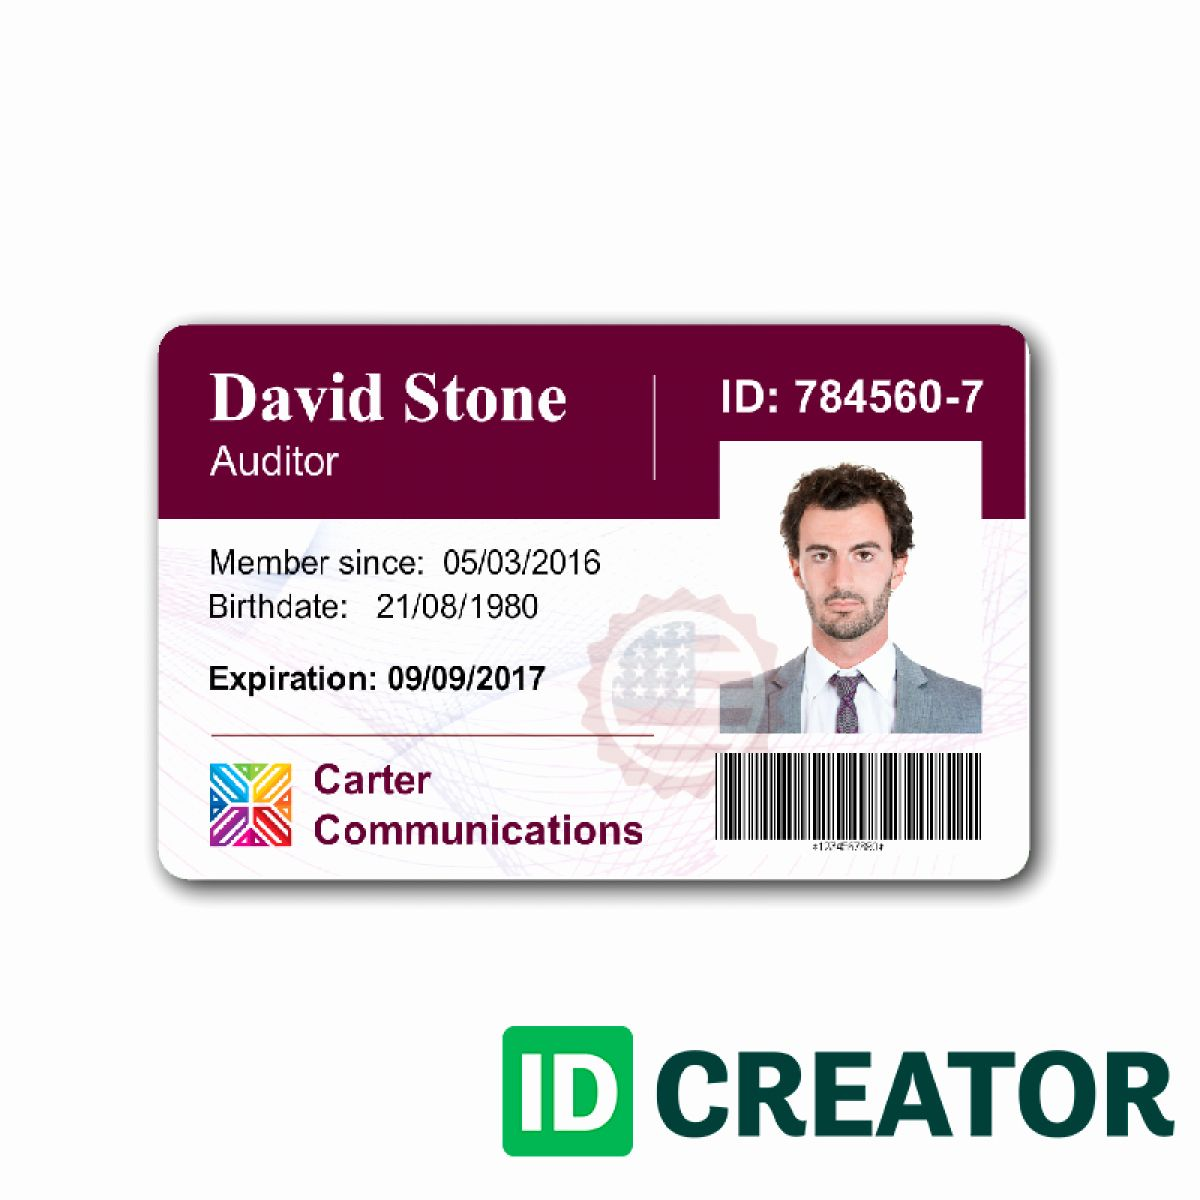 Employees Id Card Template Lovely Work Id Card Template Beautiful Template Design Ideas Id Card Template Employee Id Card Employees Card